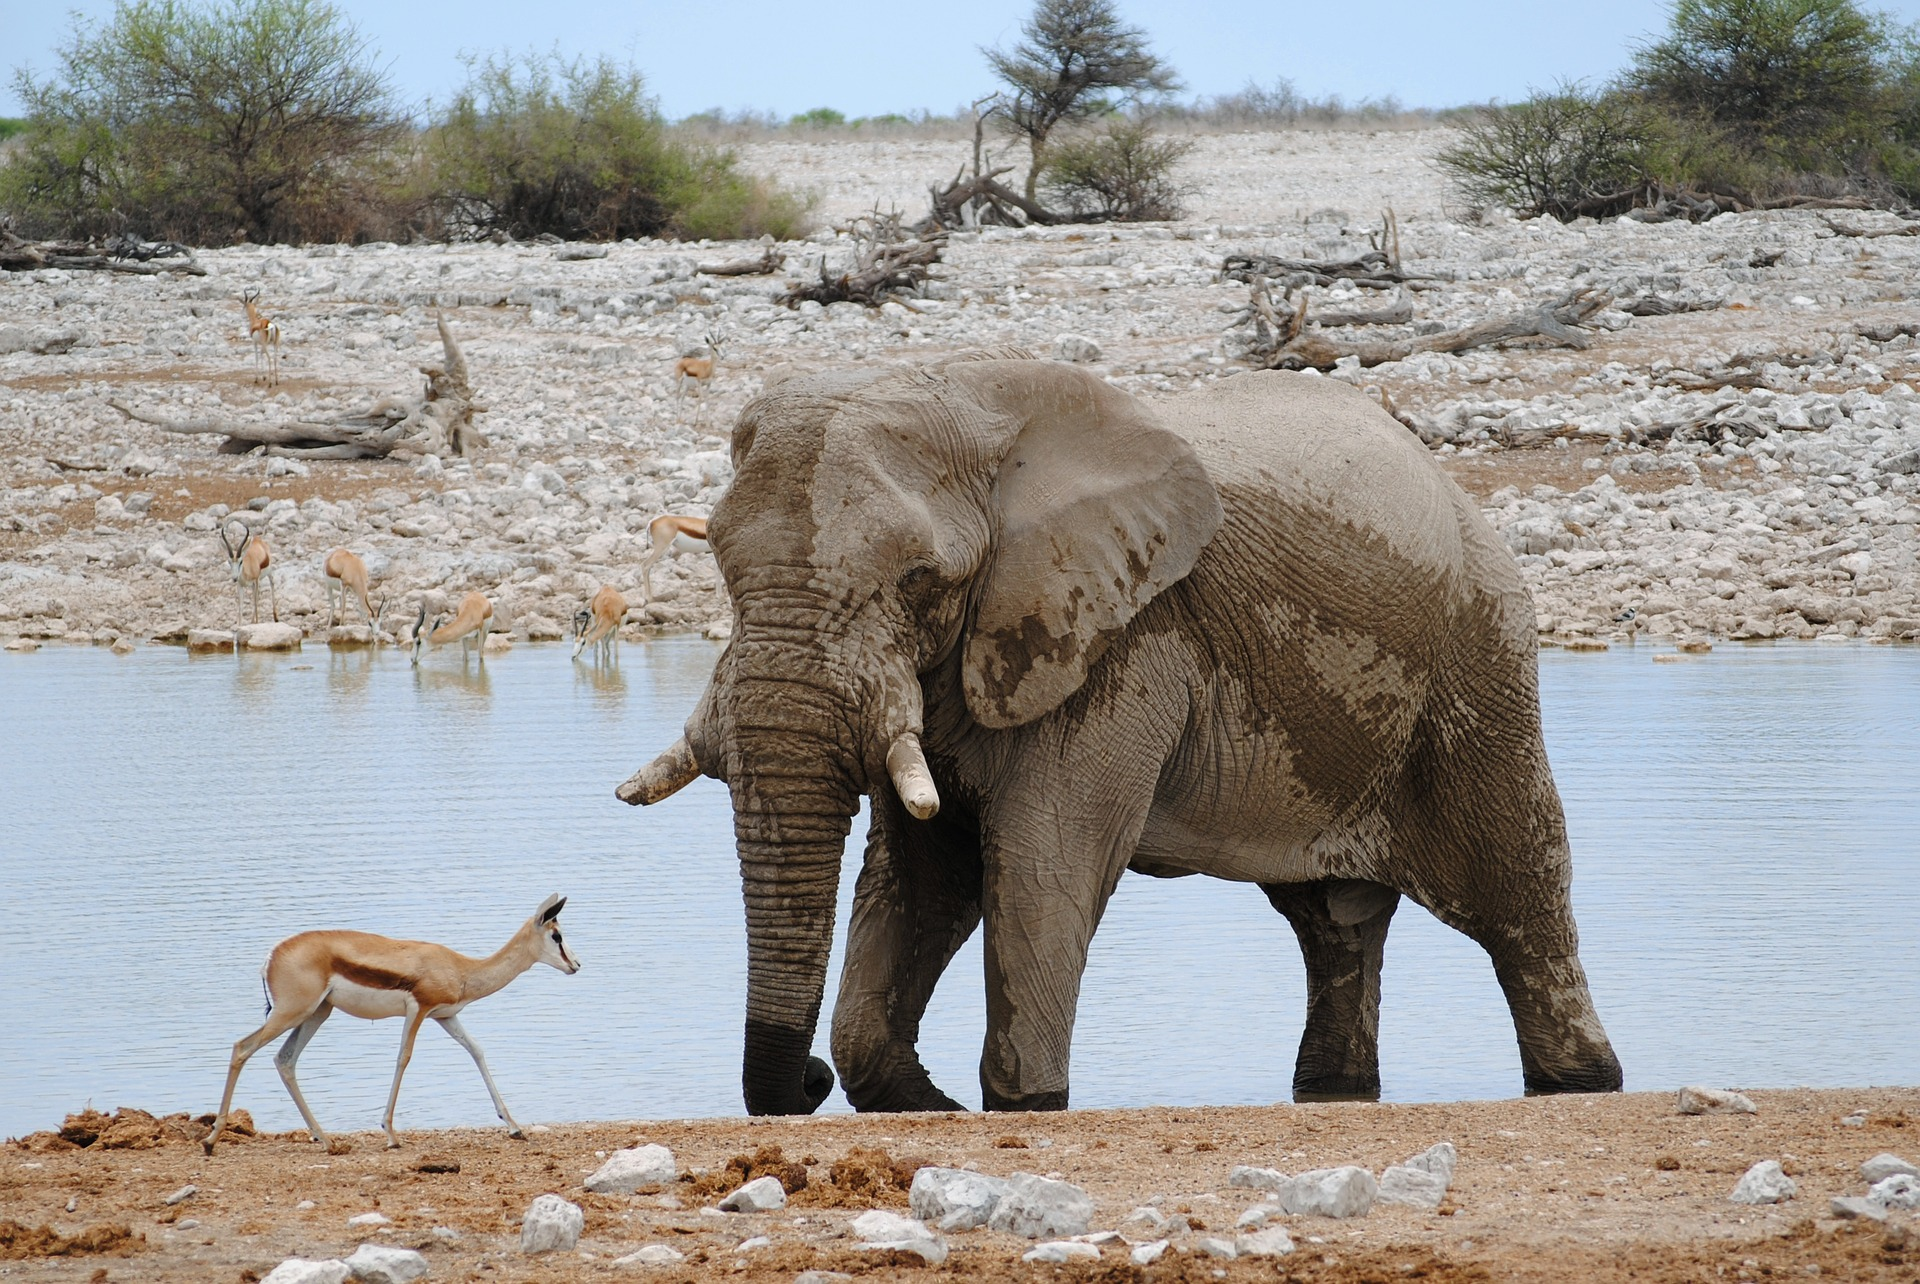 At the watering hole in Namibia's Etosha National Park.